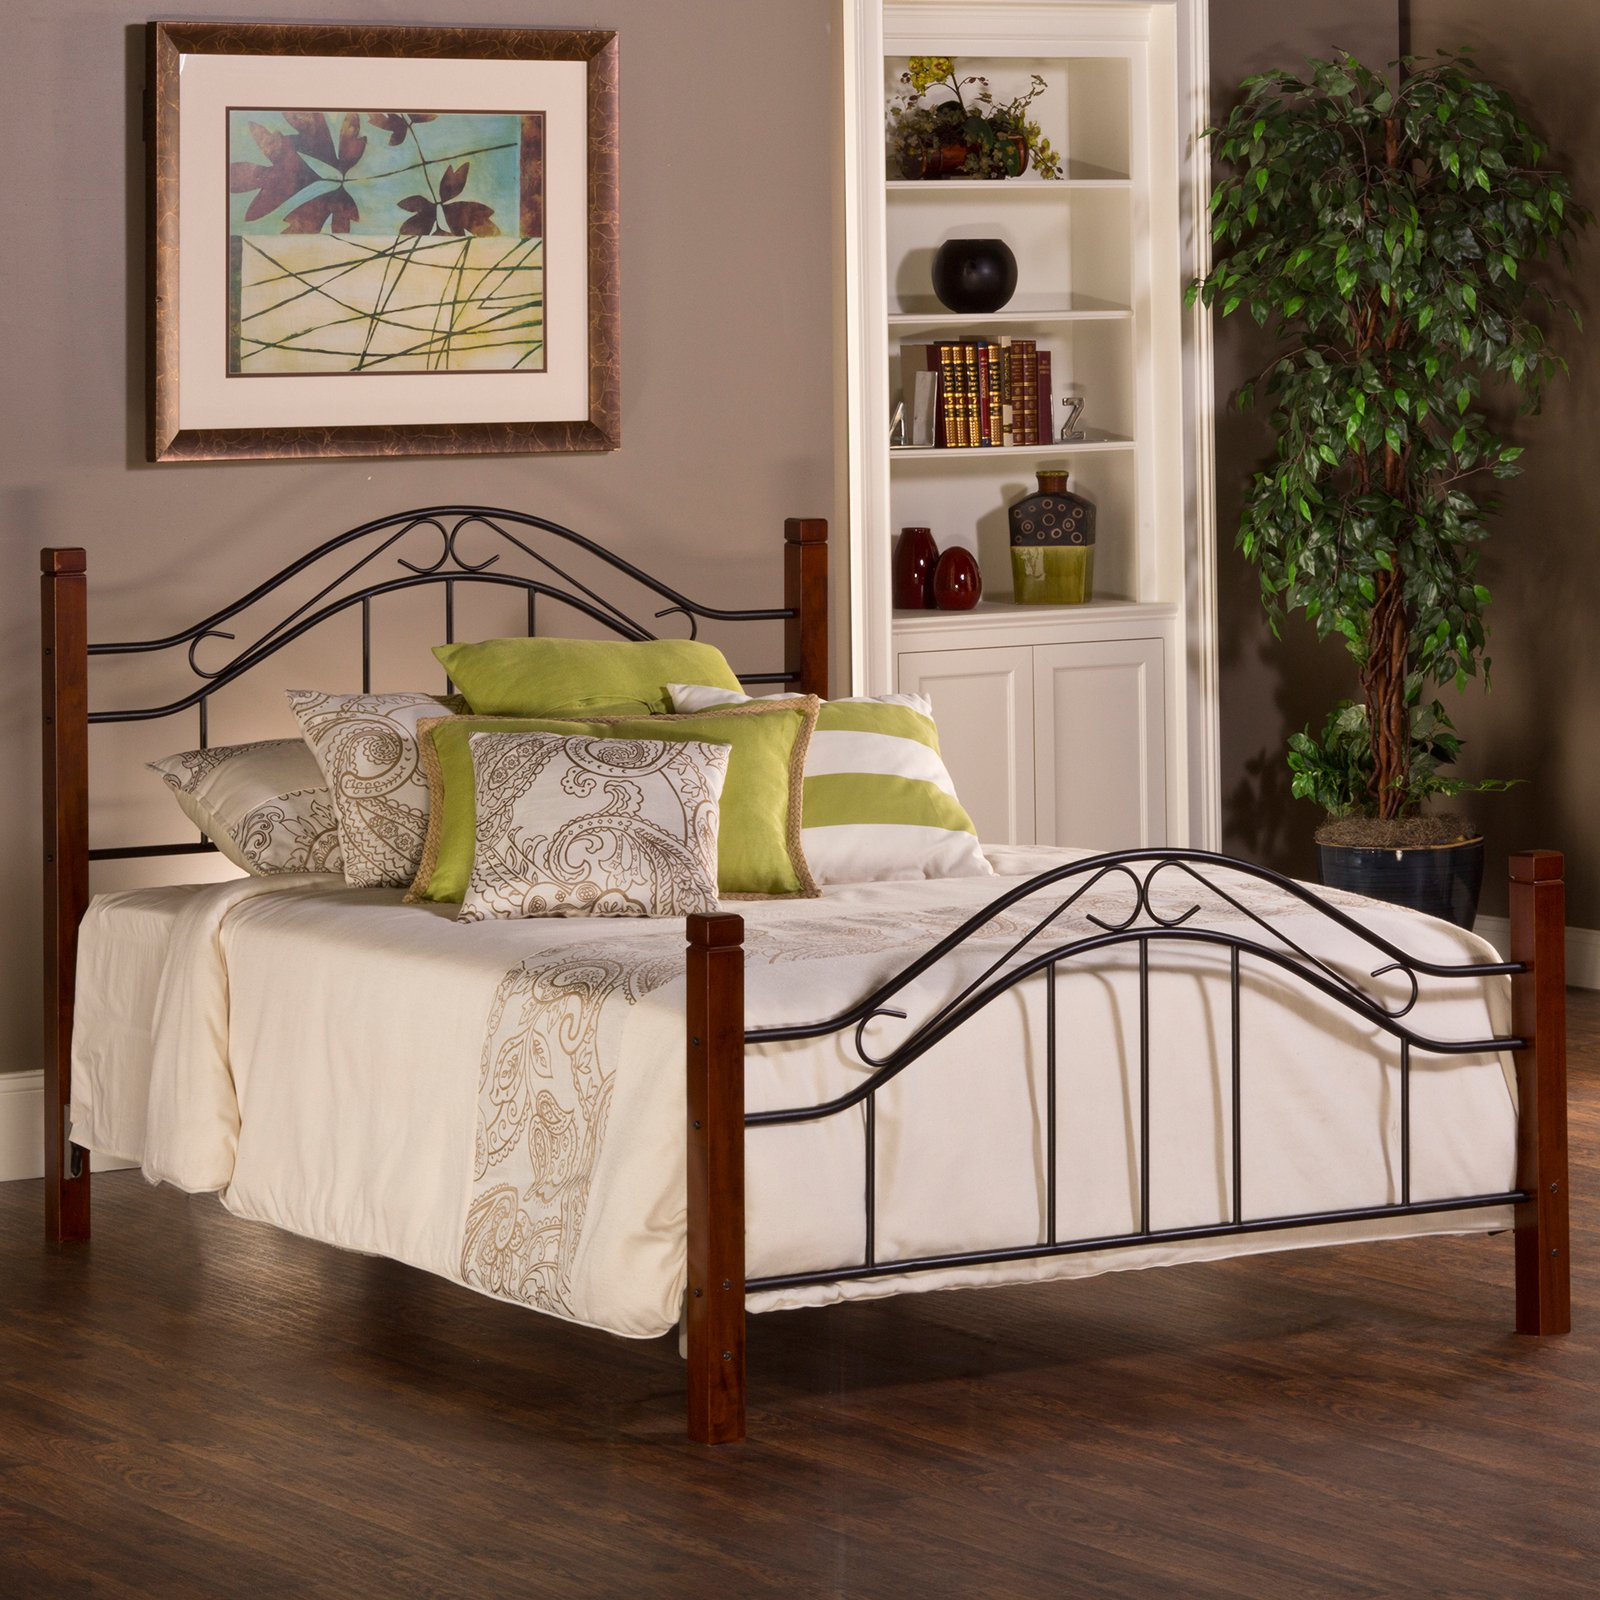 Hillsdale Furniture Matson Twin Bed with Bedframe